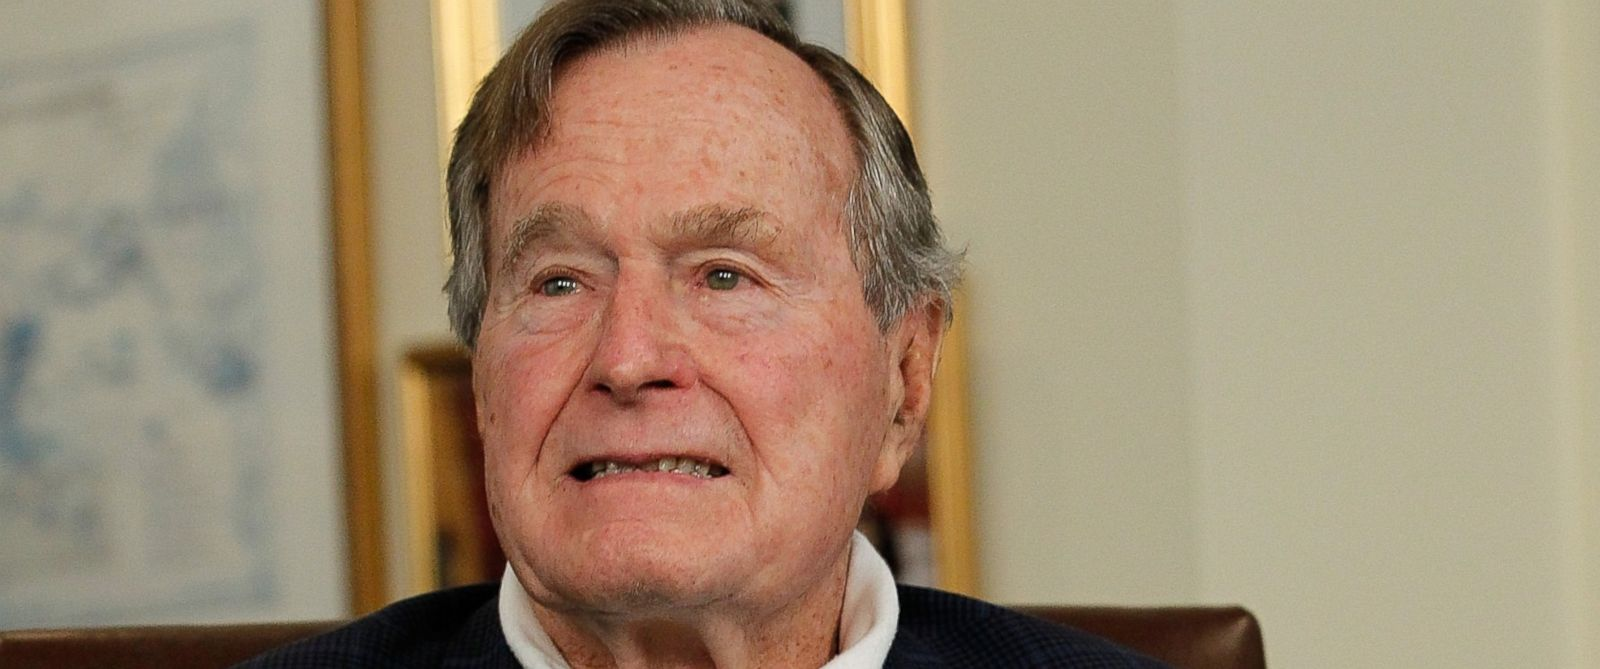 PHOTO: Former President George H.W. Bush talks with Republican presidential candidate, former Massachusetts Gov. Mitt Romney at Bushs office, March 29, 2012 in Houston, Texas.